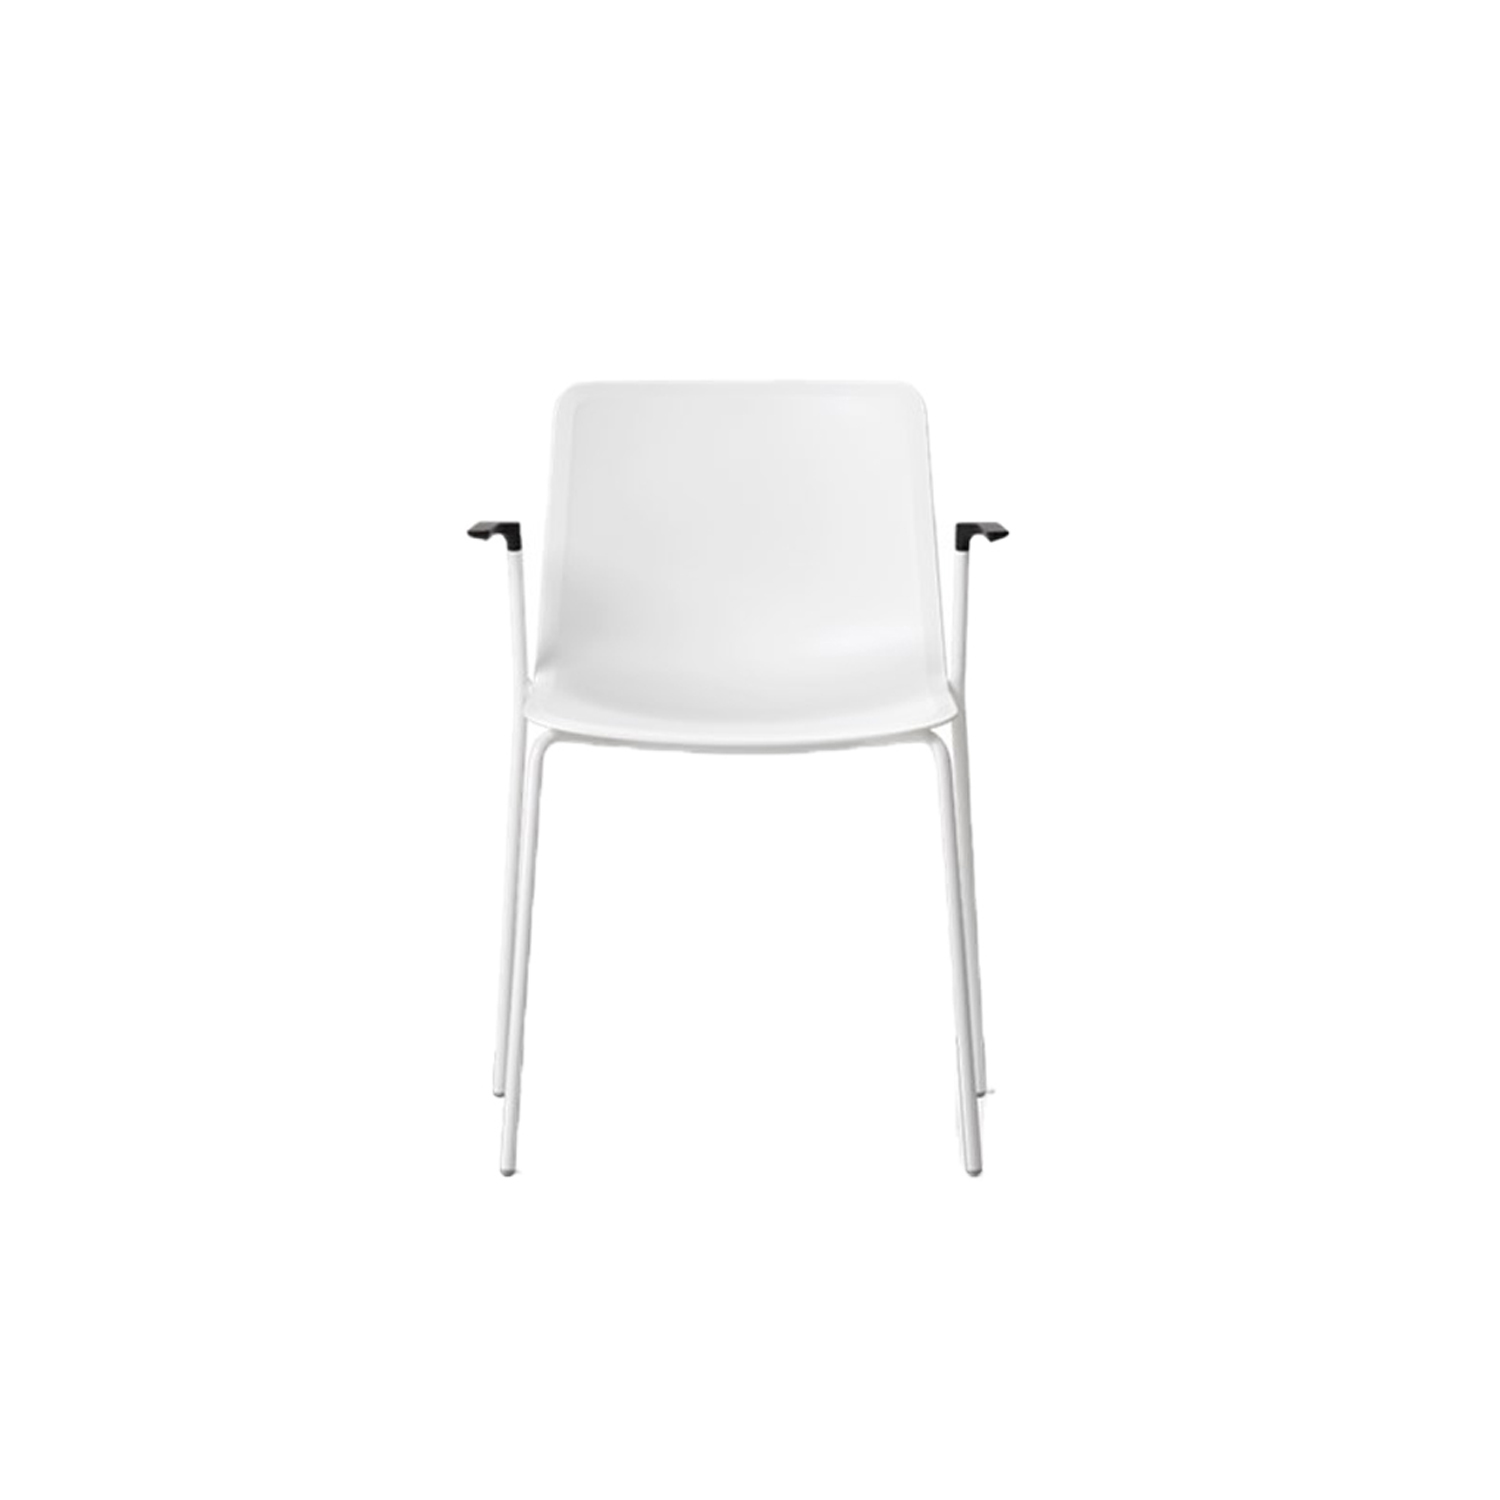 Pato 4 Leg Tube Base Armchair Seat Upholstered - Pato is a carefully crafted multipurpose chair in eco-friendly polypropylene that can be used outdoors. The chair is available with a range of optional features including coupling. The chair can be tuned from basic to exclusive with optional upholstery.  Pato is a prime example of our focus on sustainability and protecting the environment, reflected in a chair that's 100% renewable and recyclable. All components can be incorporated into future furniture production, thus contributing to a circular economy by minimising the use of materials, resources, waste and pollution.   Merging traditional production methods with cutting-edge technology, Pato is a human-centric, highly versatile series of multi-purpose functional furniture that draws on our in-depth experience with materials, immaculate detailing and heritage of fine craftsmanship. Allowing us to apply our high standards of texture, finish and carpentry techniques to an array of materials in addition to wood for products aimed at a mass market.   With its clean lines and curves, Pato echoes the ethos of Danish-Icelandic design duo Welling/Ludvik. Demonstrating their belief that good design has the ability to be interesting, even when reduced to its most simple form. Where anything extraneous is eliminated and every detail has a purpose.   Together we spent nearly three years developing the shell structure to have a soft surface that's also wear and tear resistant. Enhancing the chair's ability to optimally conform to the user's body is a subtle beveled edge. A technique from classic cabinetmaking, which gives the chair a sense of handcrafted finesse. Each Pato is detailed and finished by hand by our highly skilled crafts people, who refine the beveled edge and the silky, resilient surface. Setting a new standard for the execution and finish of polypropylene.   Since the success of its initial launch, we've expanded Pato into an extensive collection of variants, fea